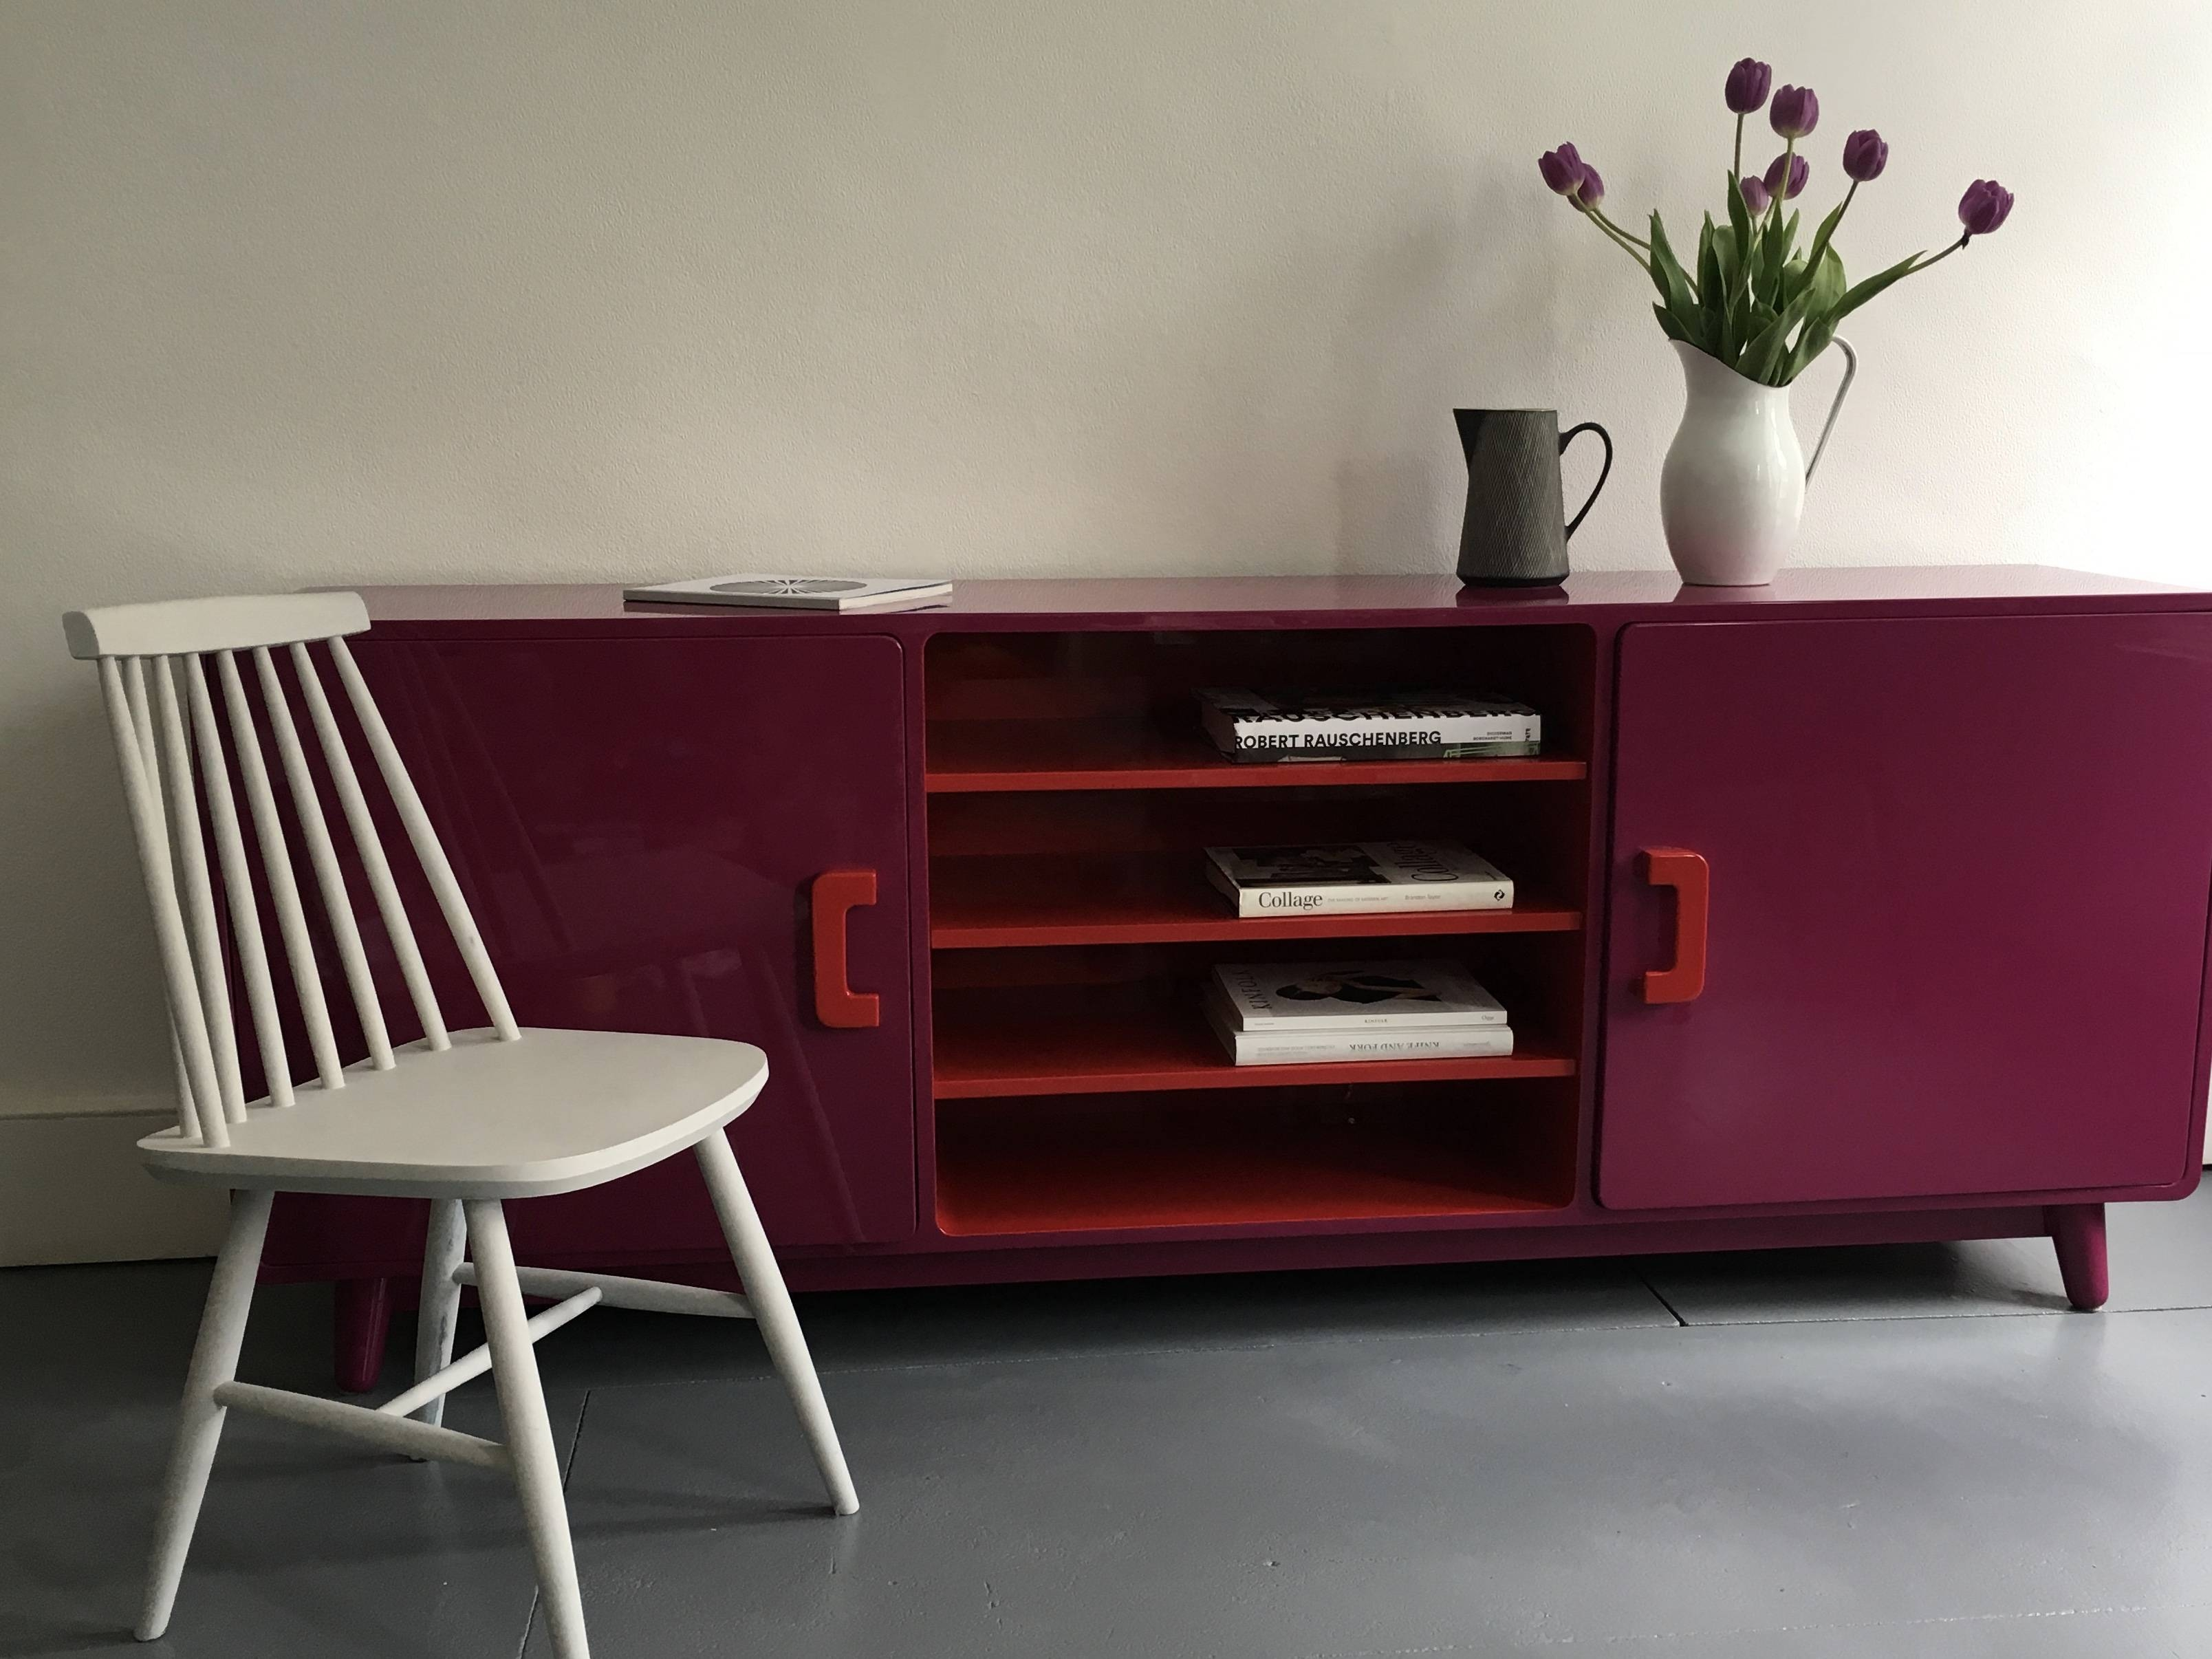 60's Inspired High Gloss Lacquered Sideboard In Hot Pink And Red Intended For Red High Gloss Sideboard (View 8 of 20)